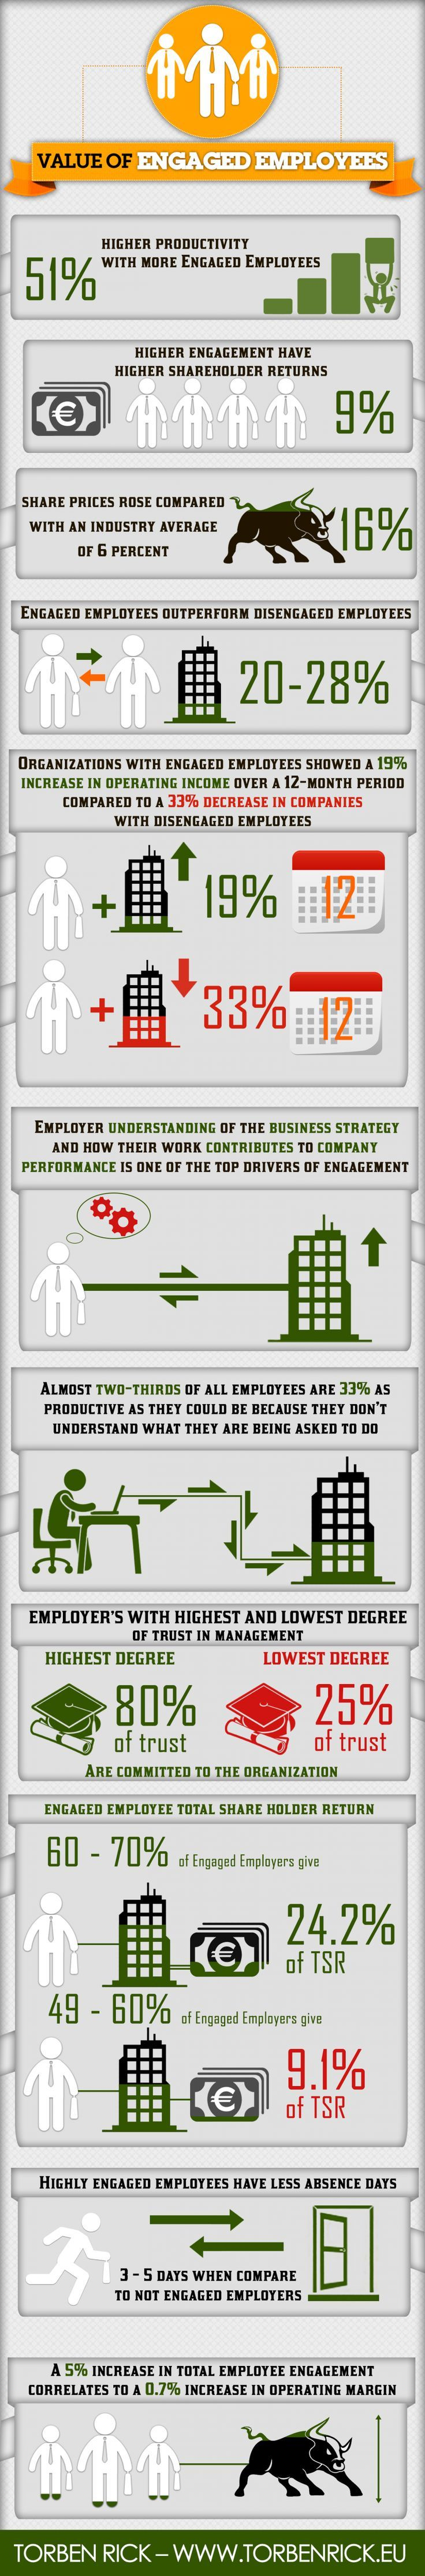 Value of Engaged Employees